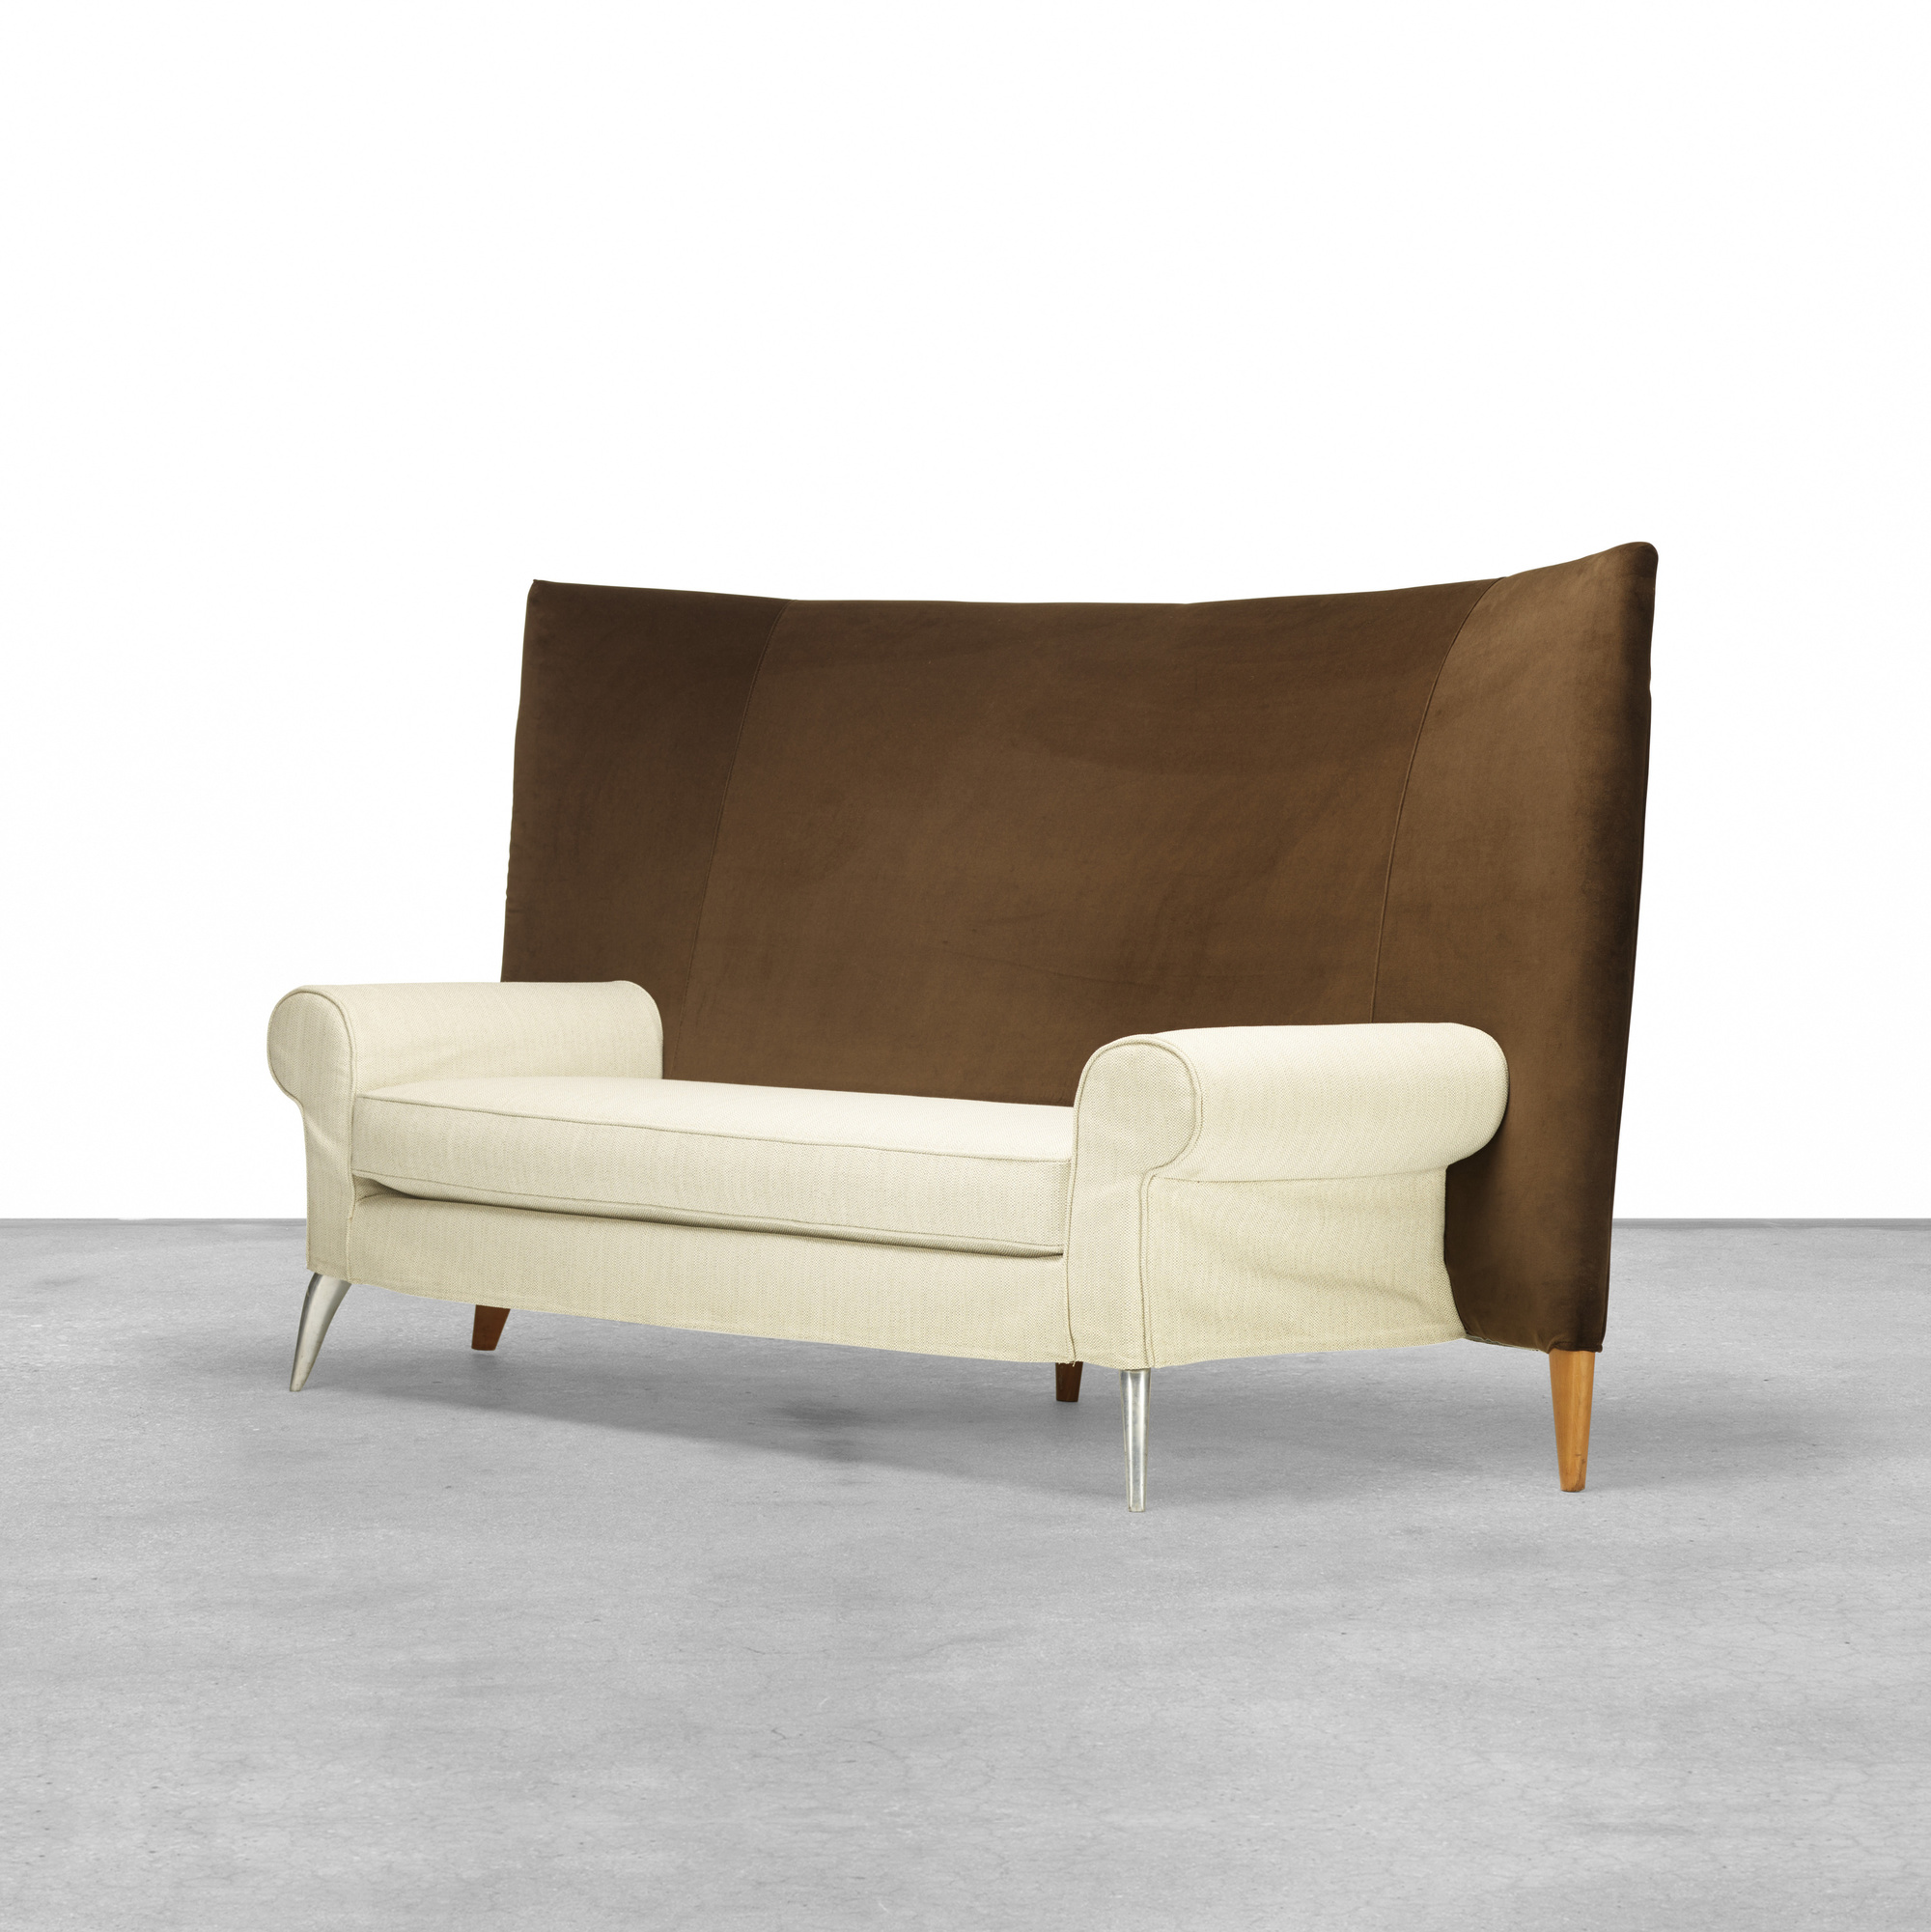 242: Philippe Starck / Royalton sofa (1 of 2)